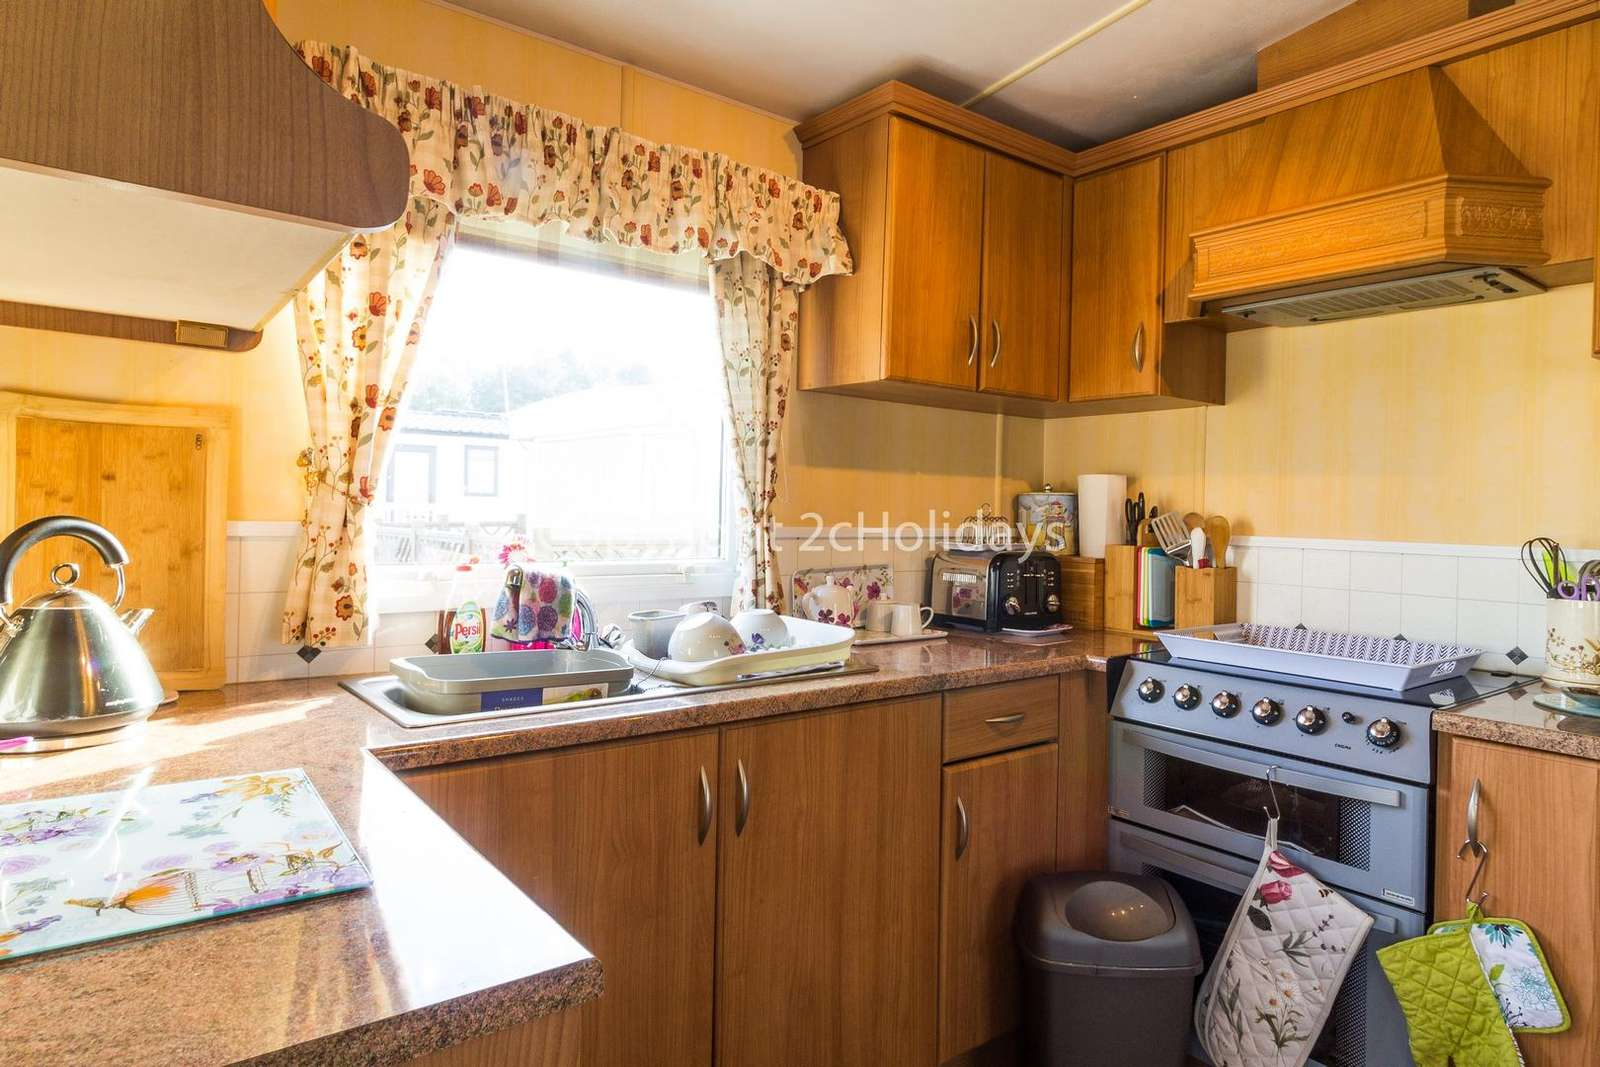 Caravan to hire near Pleasurewood Hills Book your holiday at Broadland Sands.